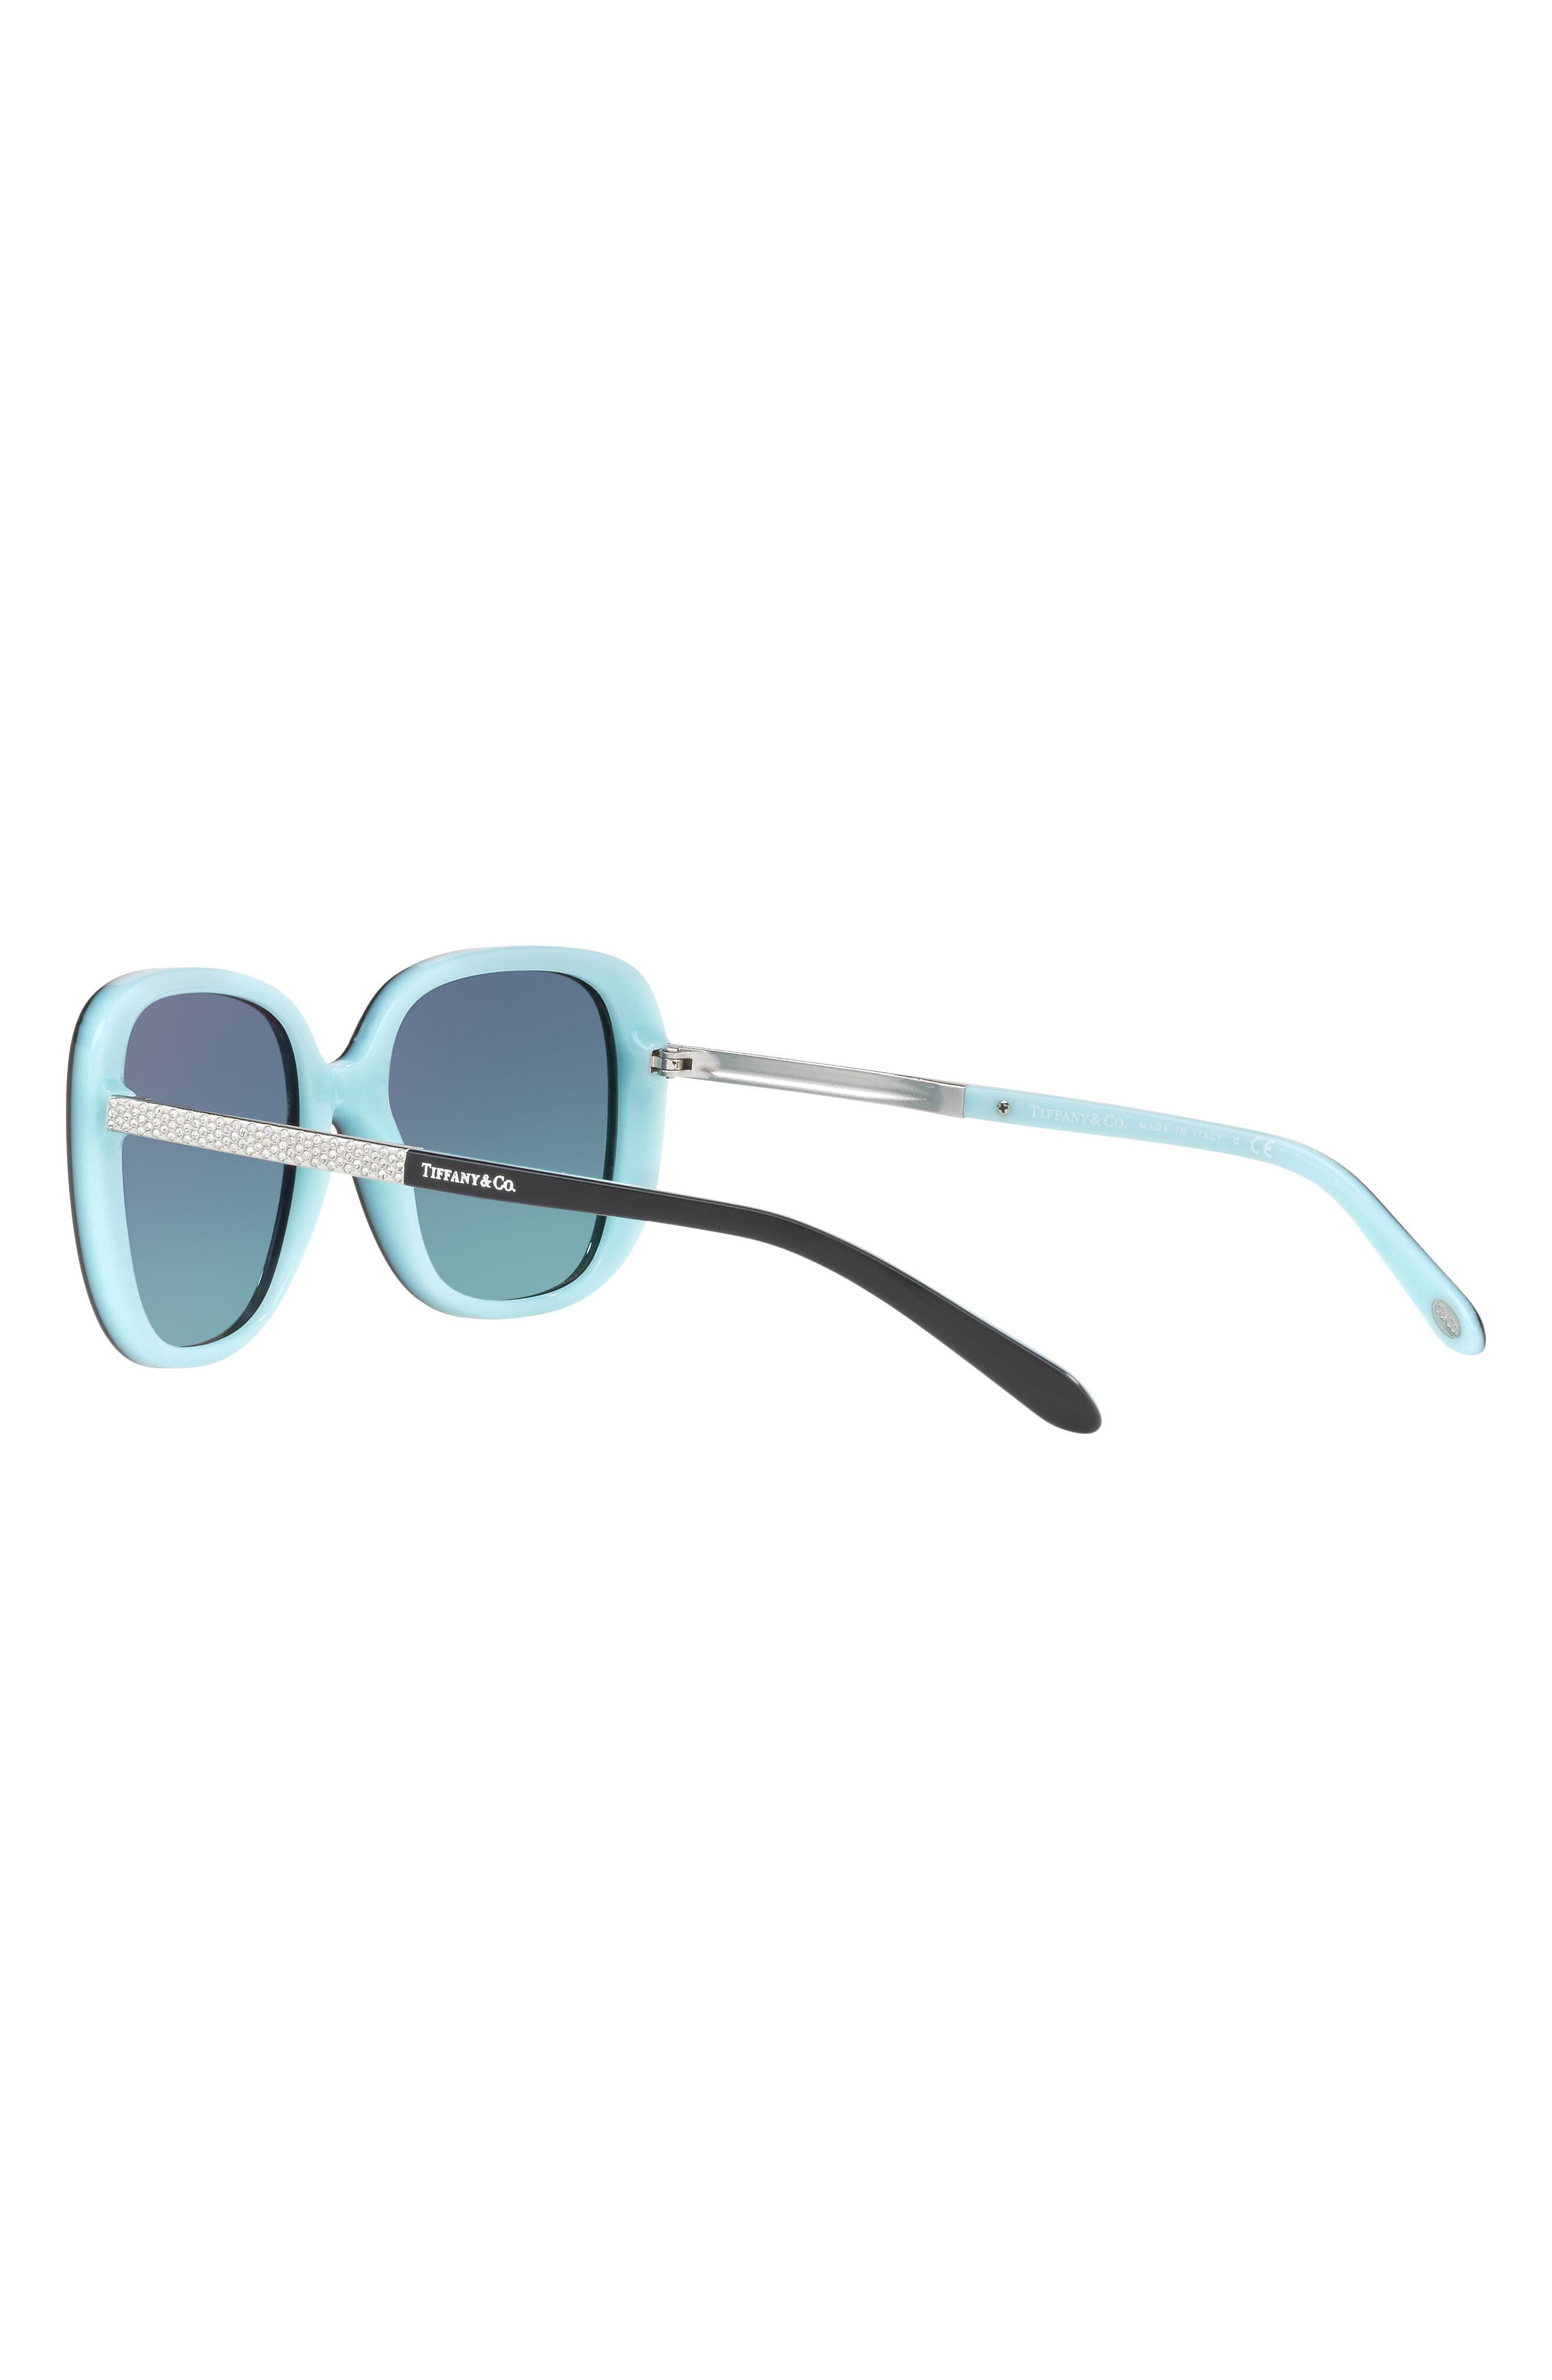 54mm Gradient Sunglasses,                             Alternate thumbnail 3, color,                             BLACK/ BLUE